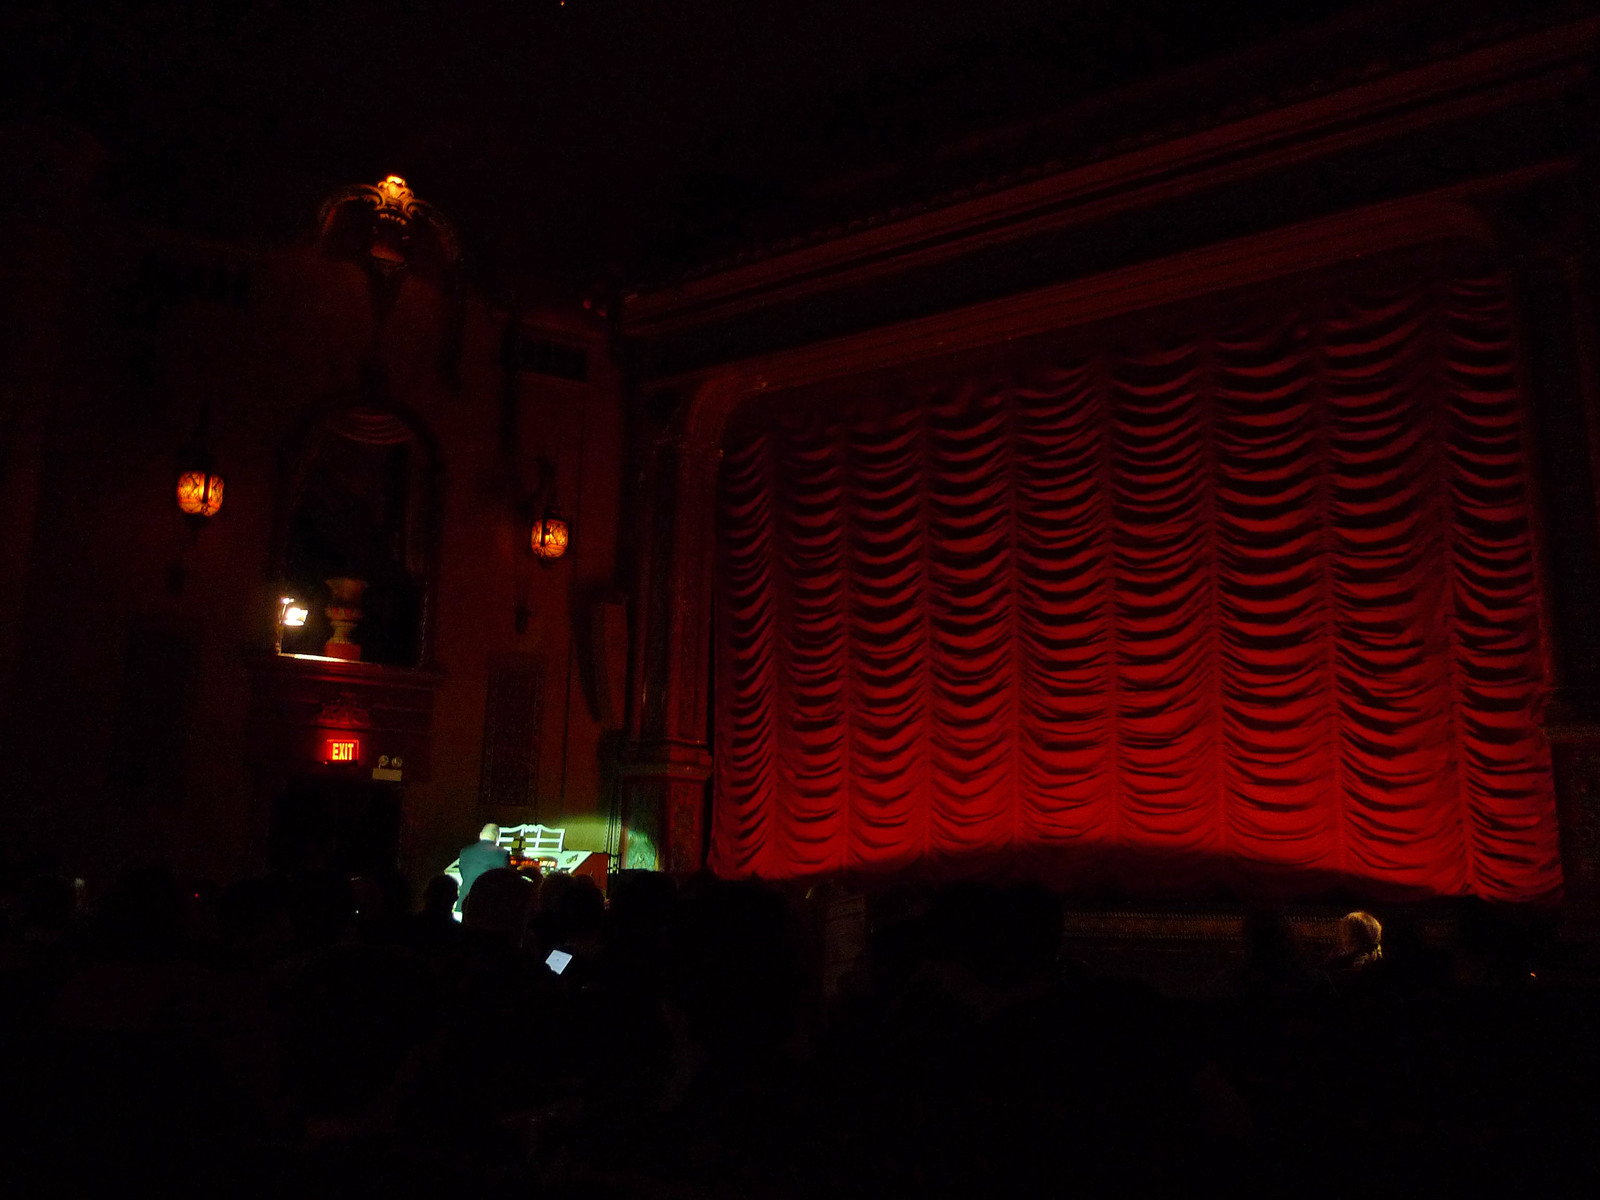 before the screening of Industrial Symphony No. 1 at David Lynch film retrospective (Music Box Theatre) | by find myself a city (1001 Afternoons in Chicago)